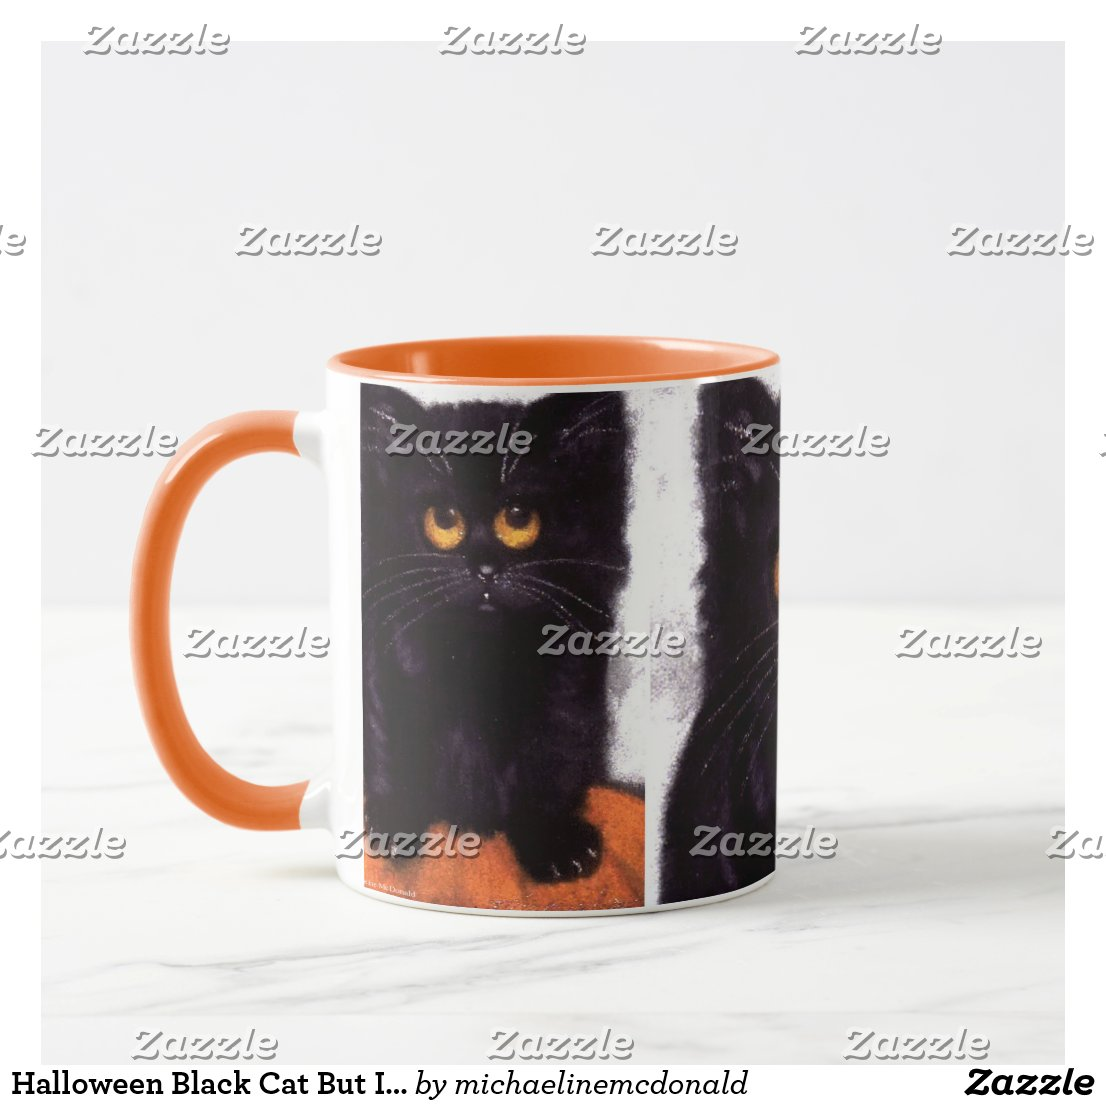 Halloween Black Cat But I'm Cute Mug